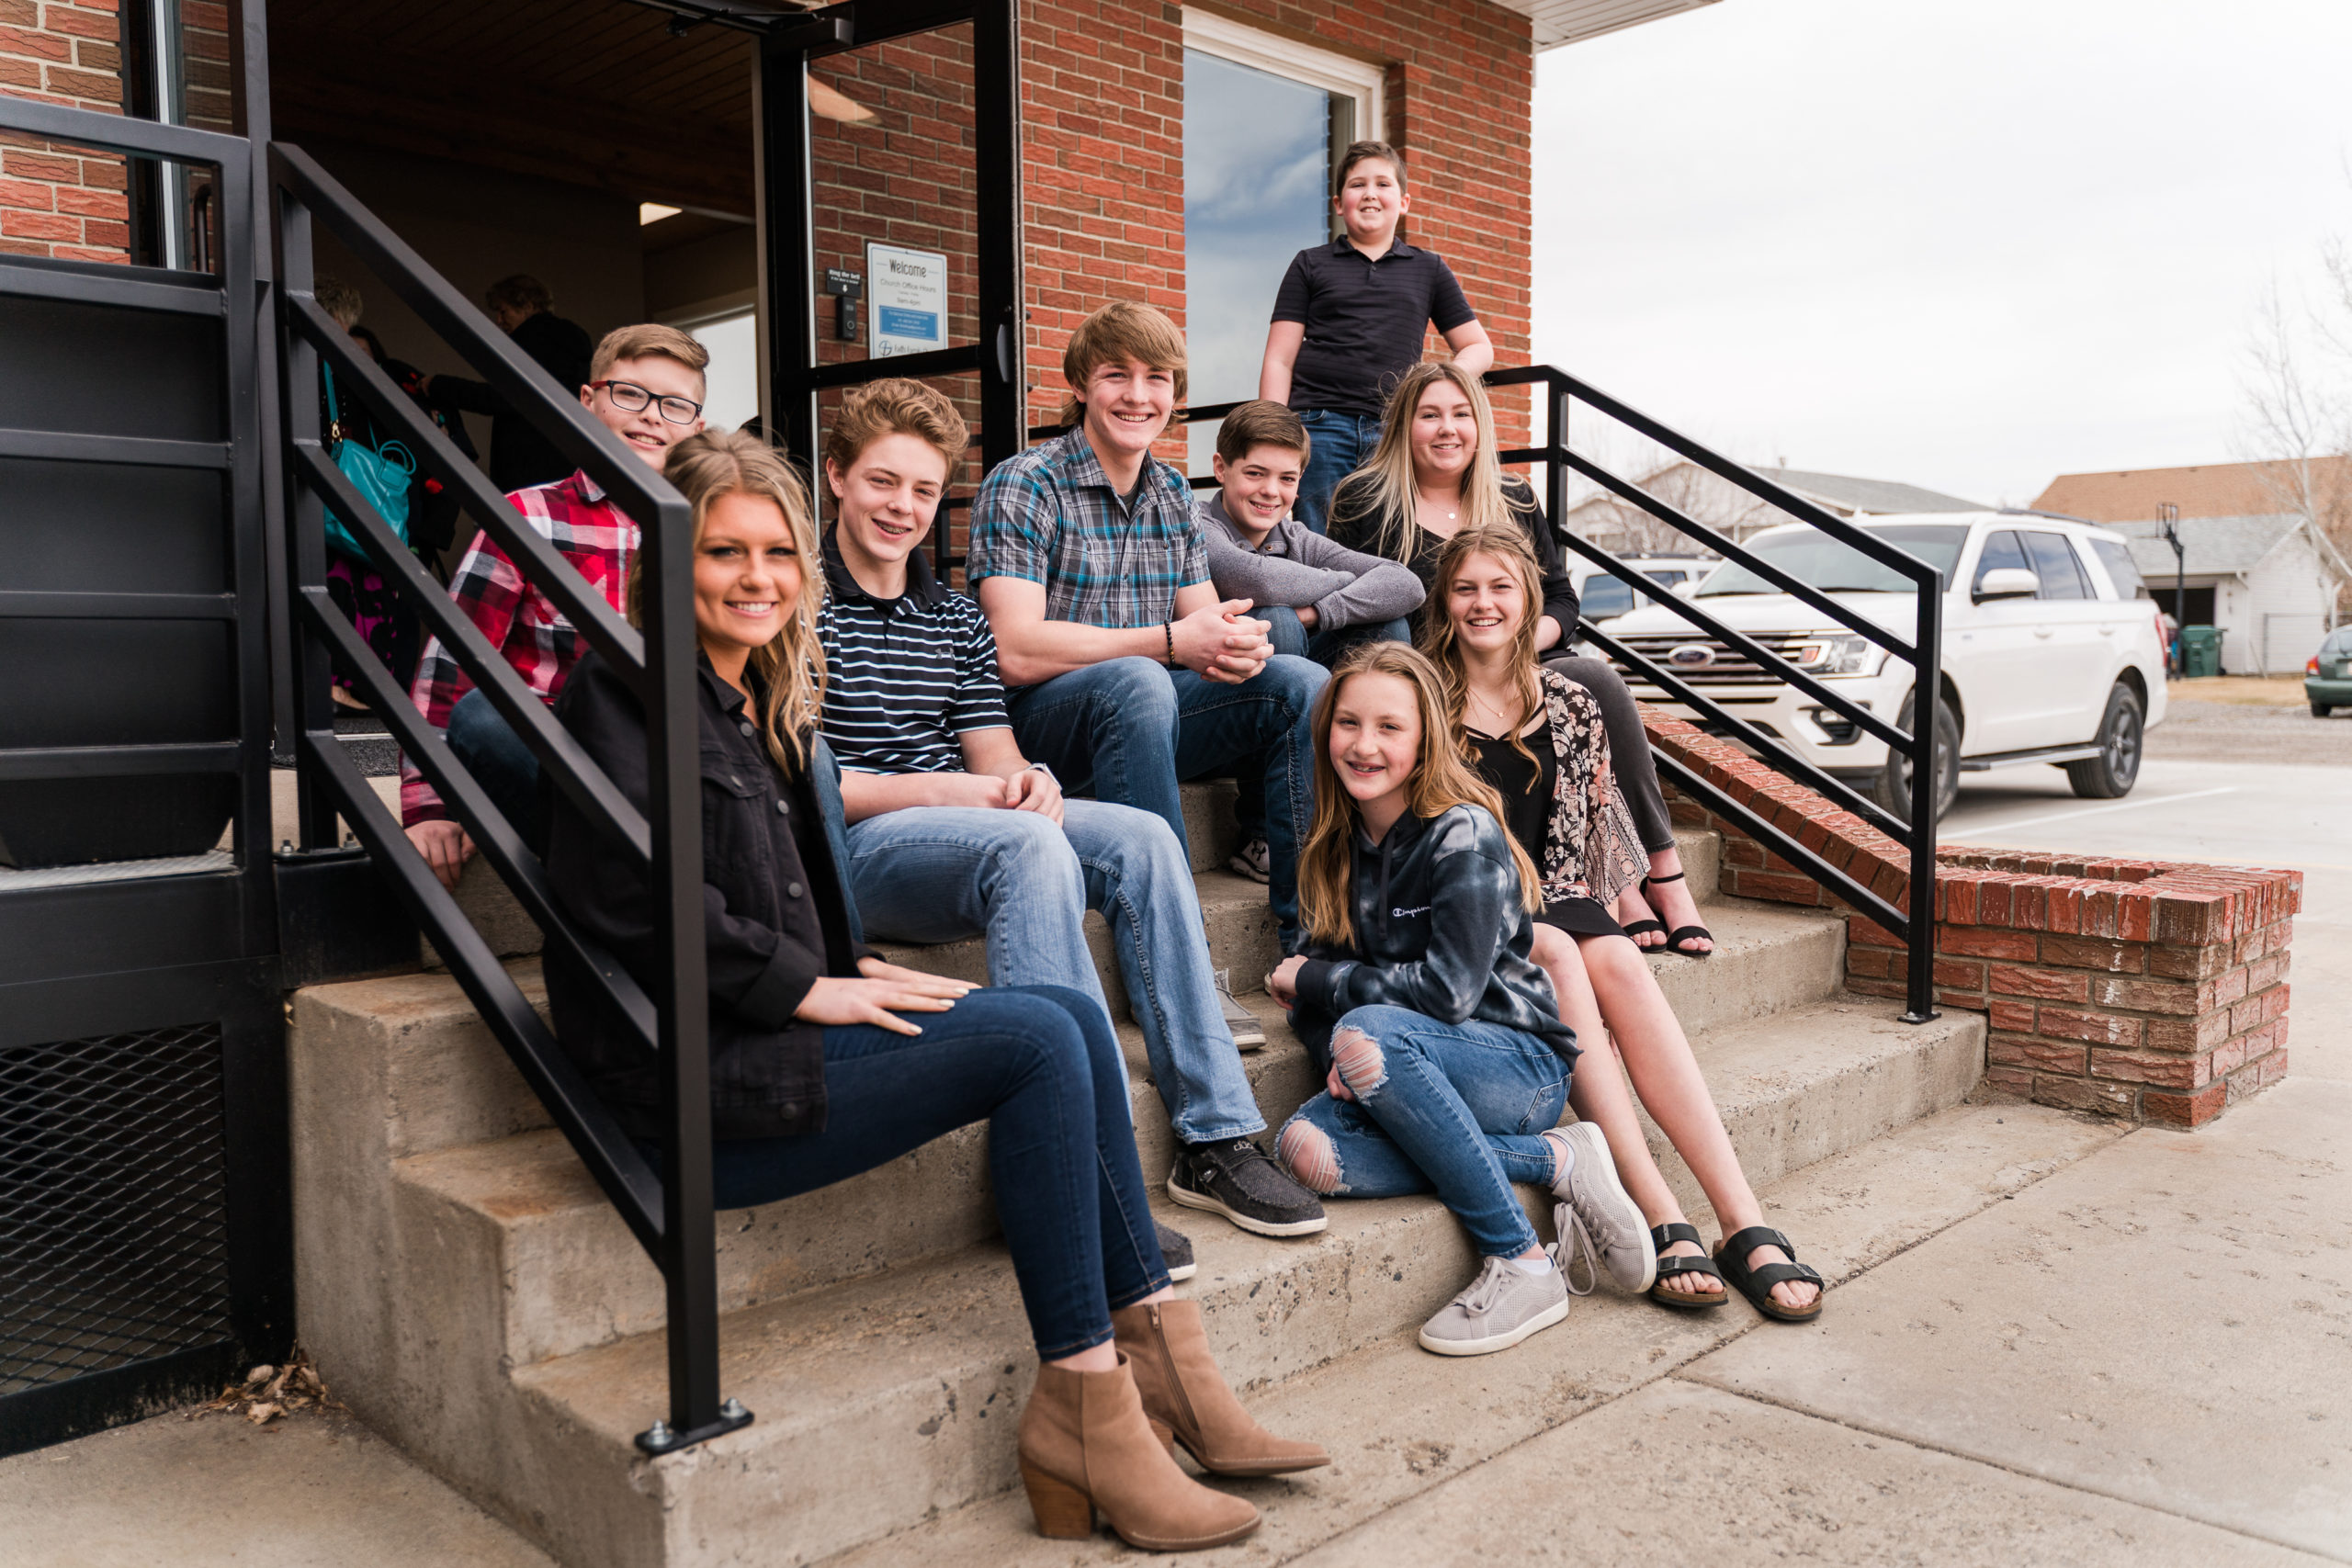 Youth Group at Faith Family Billings Church, Billings, MT